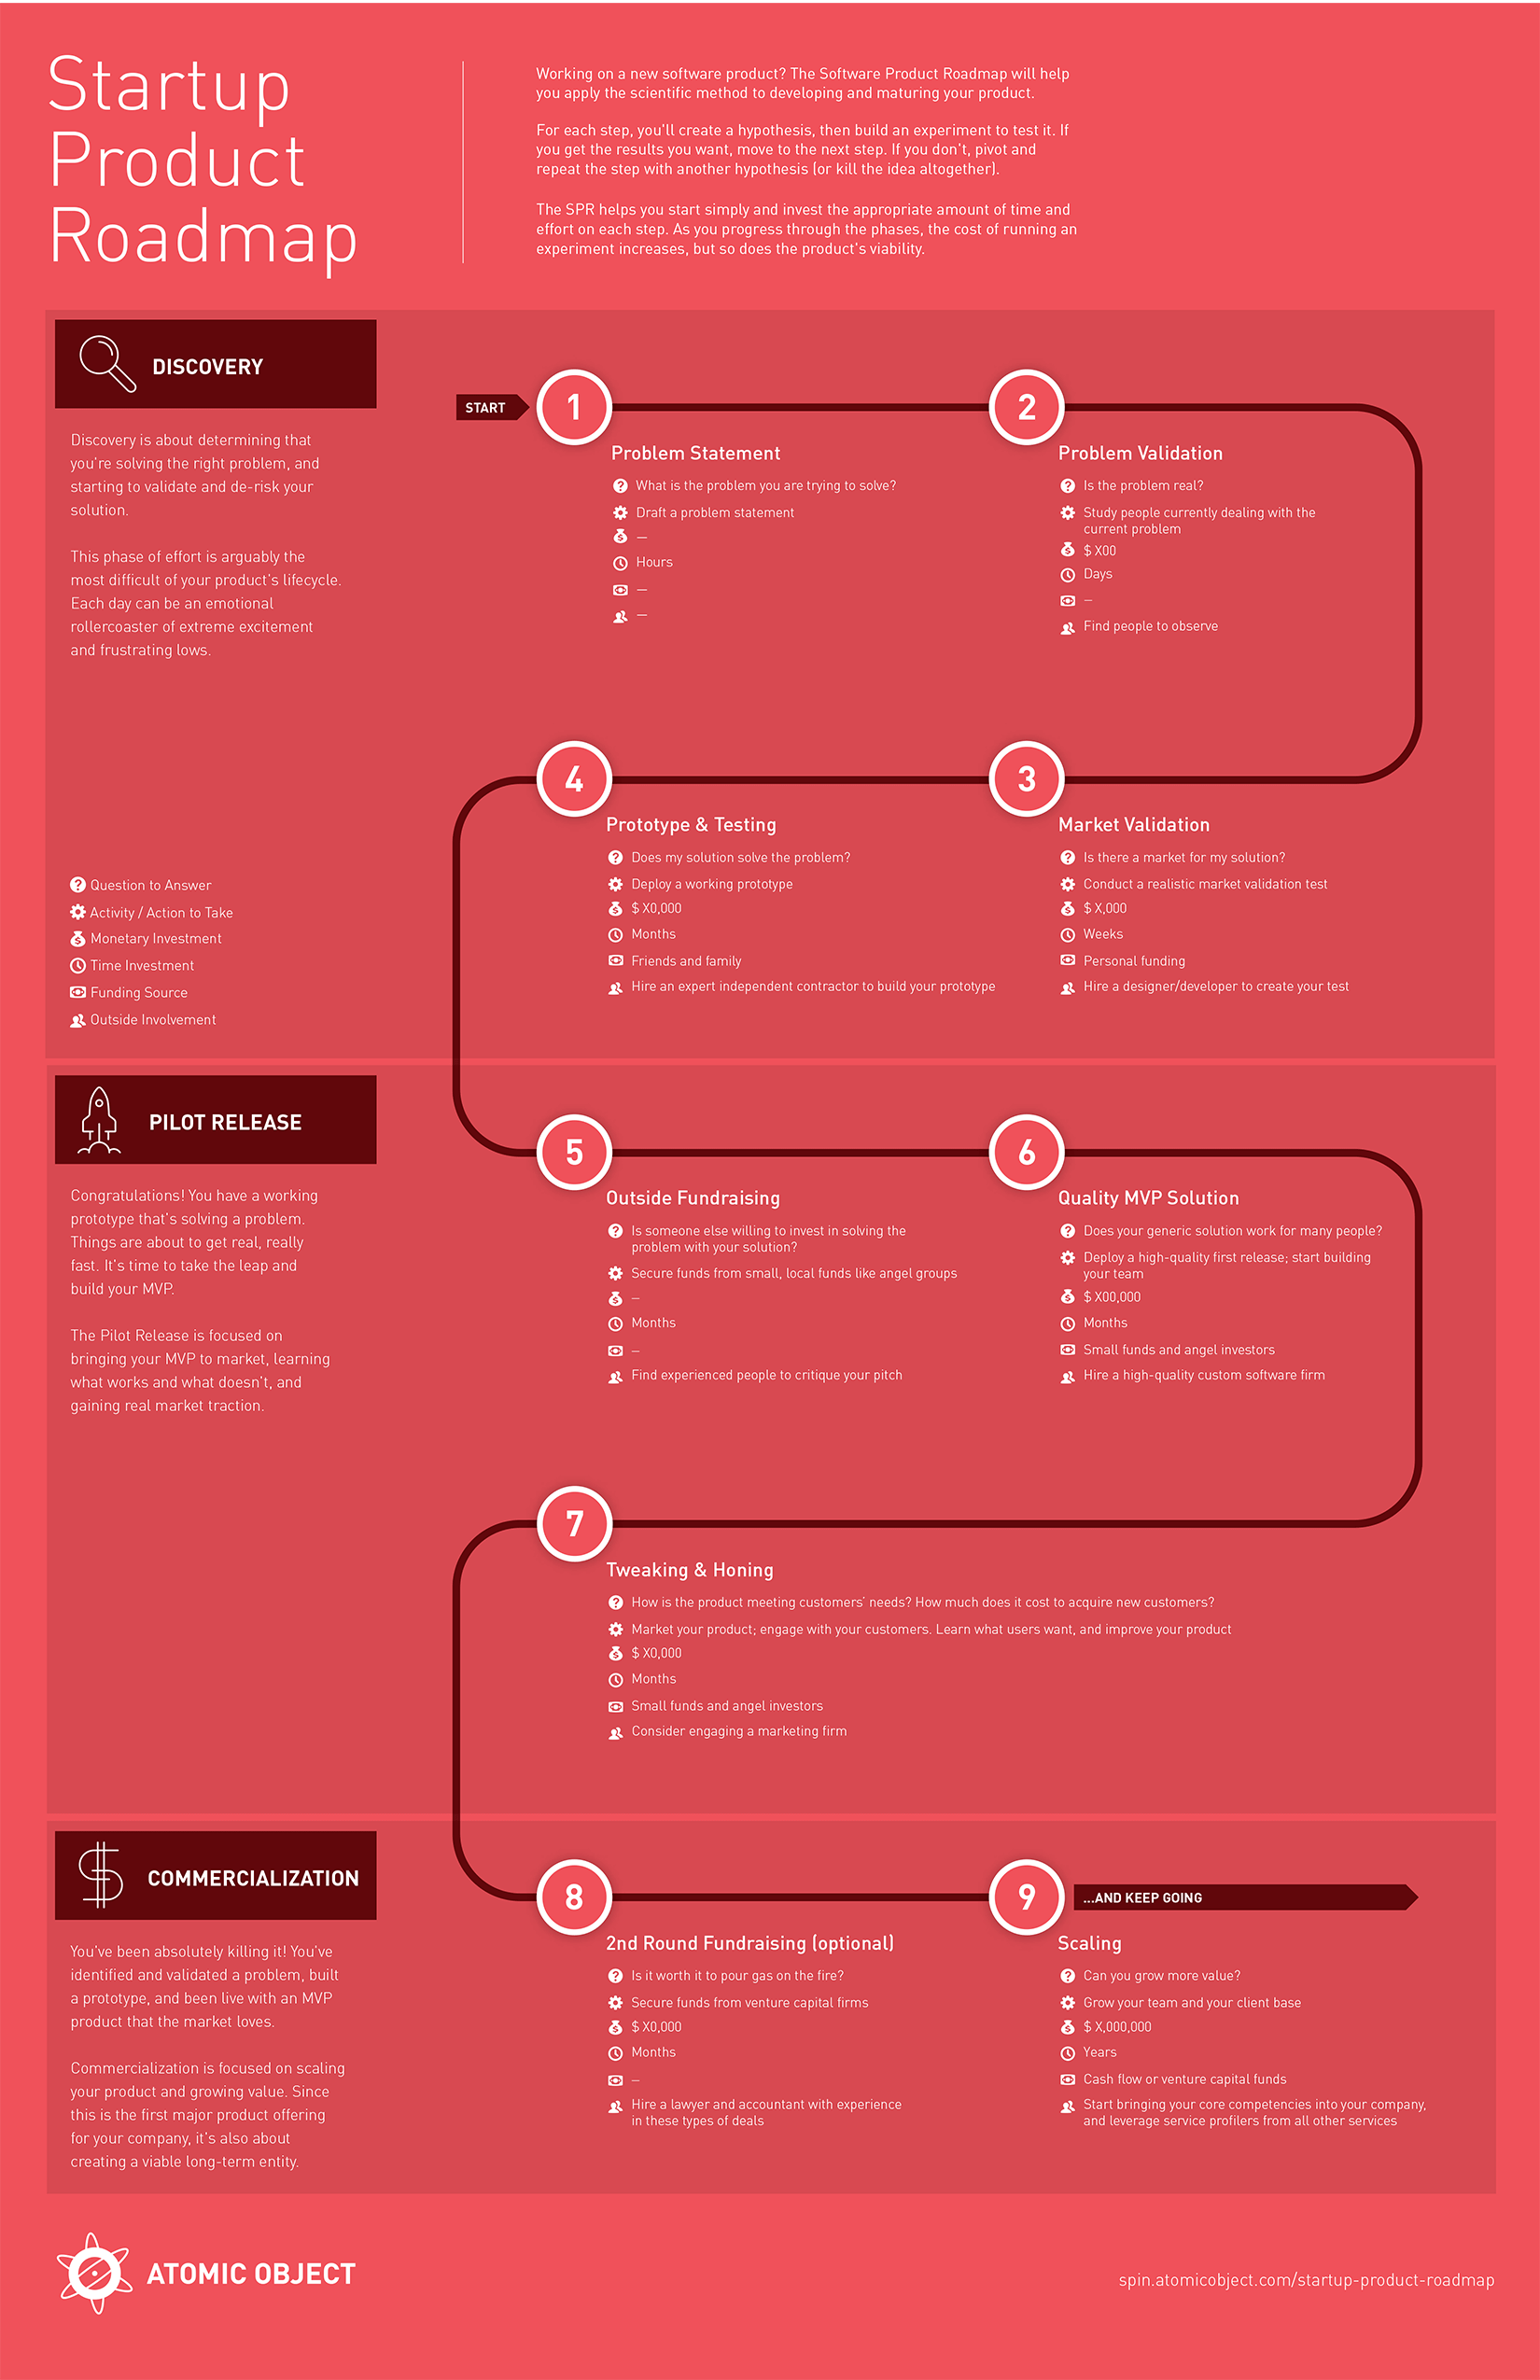 Startup Product Roadmap Infographic